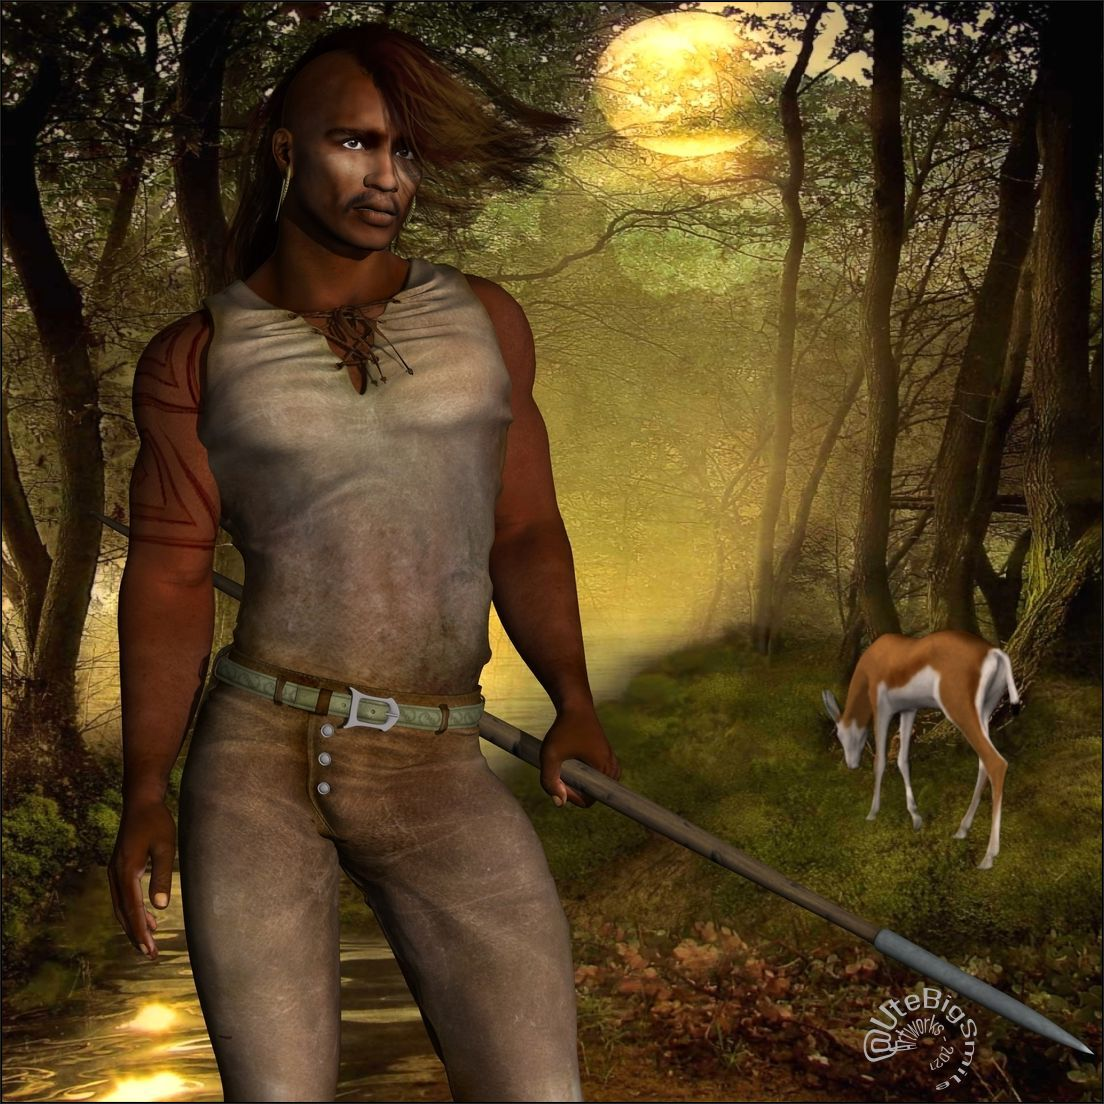 Zuri, the Man of the Woods!